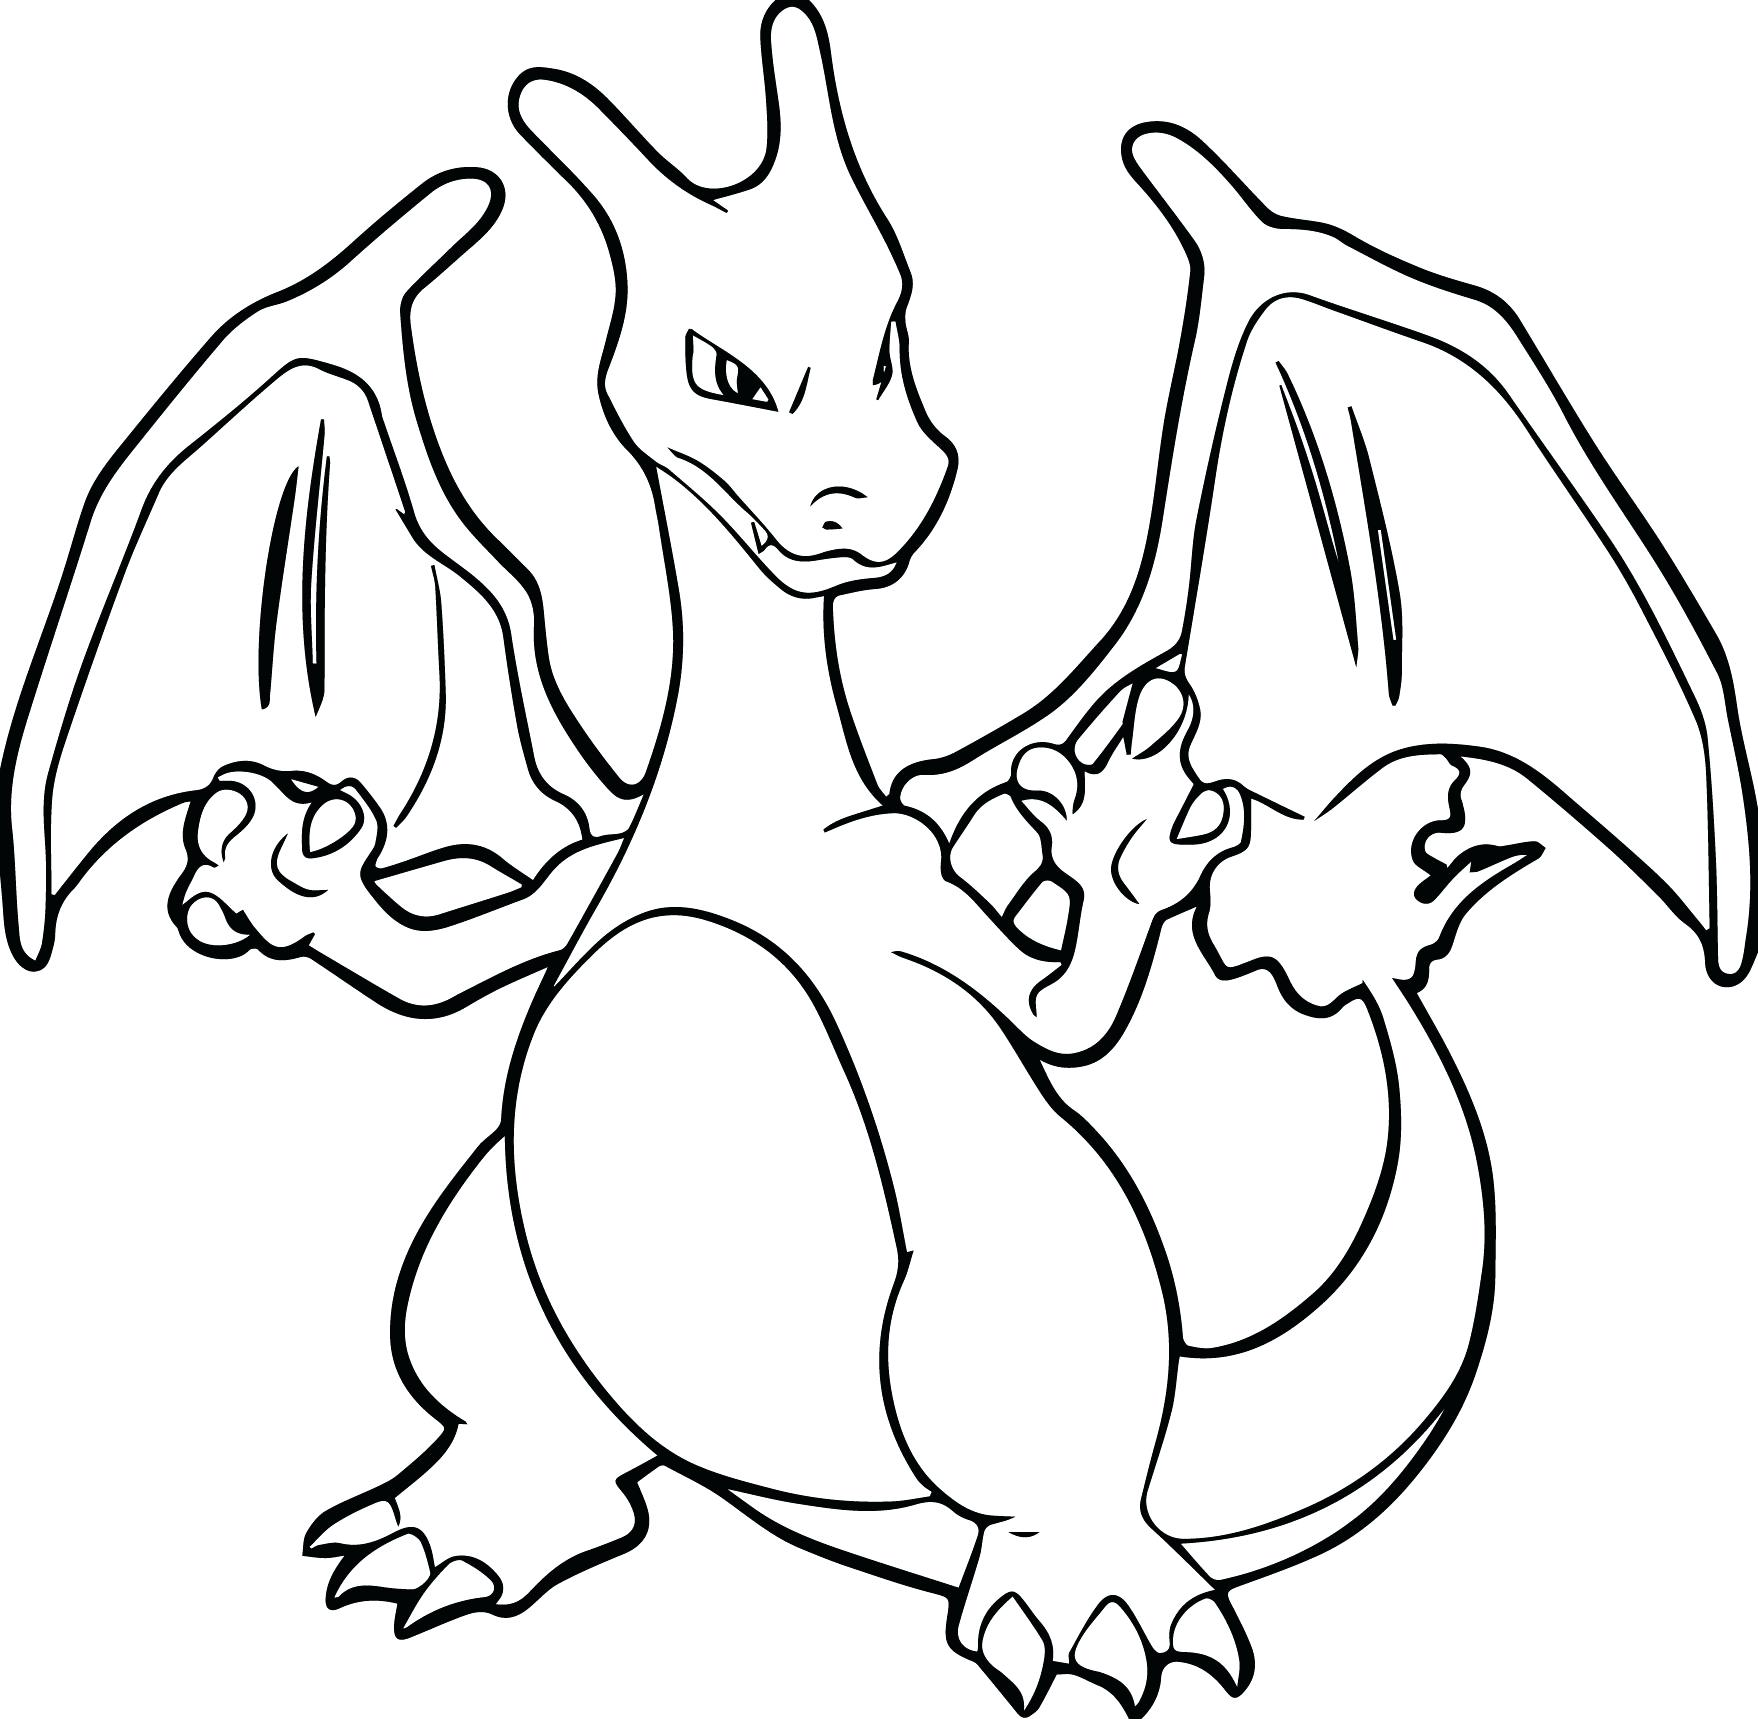 1758x1719 Mega Charizard X Drawing Coloring Page Pokemon Coloring Pages